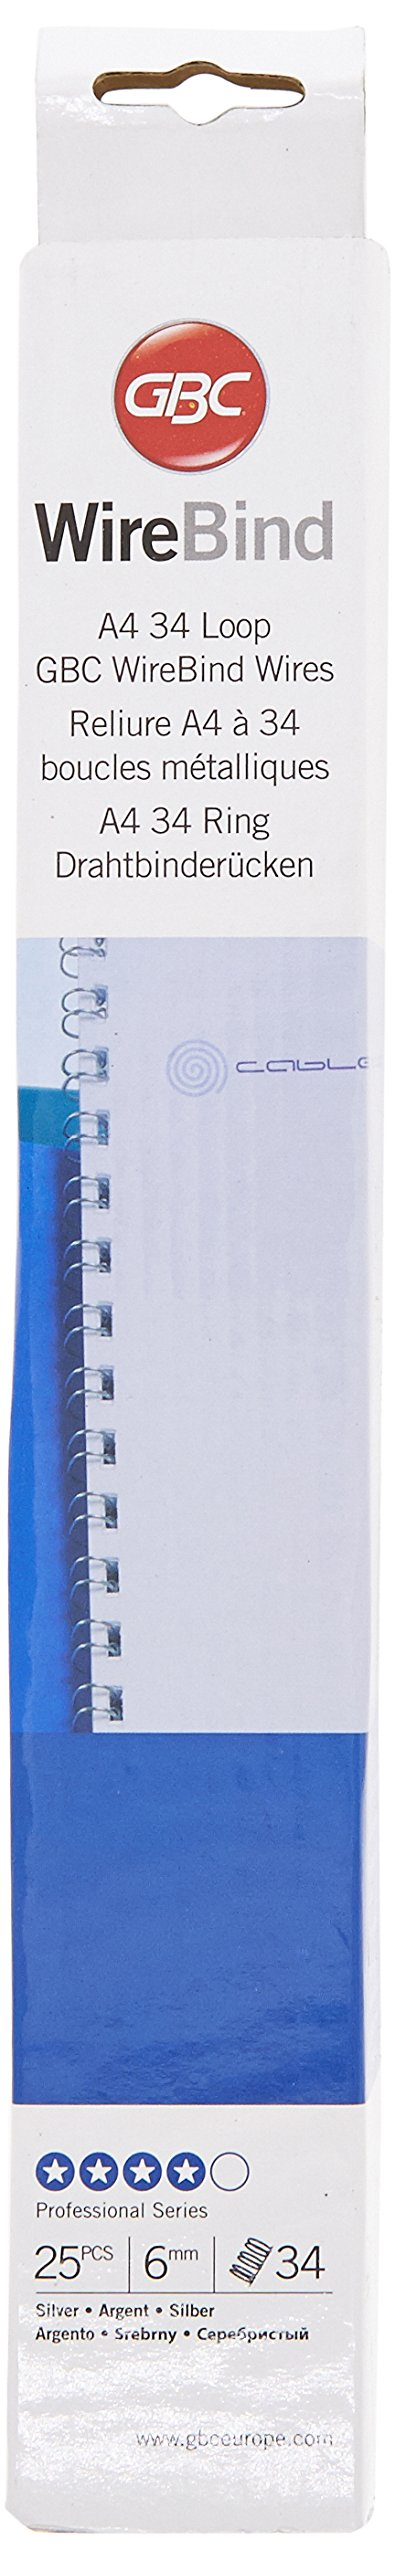 GBC 4400695Binding Spines A434rings 6mm 55Sheets Pack of 25 6 mm